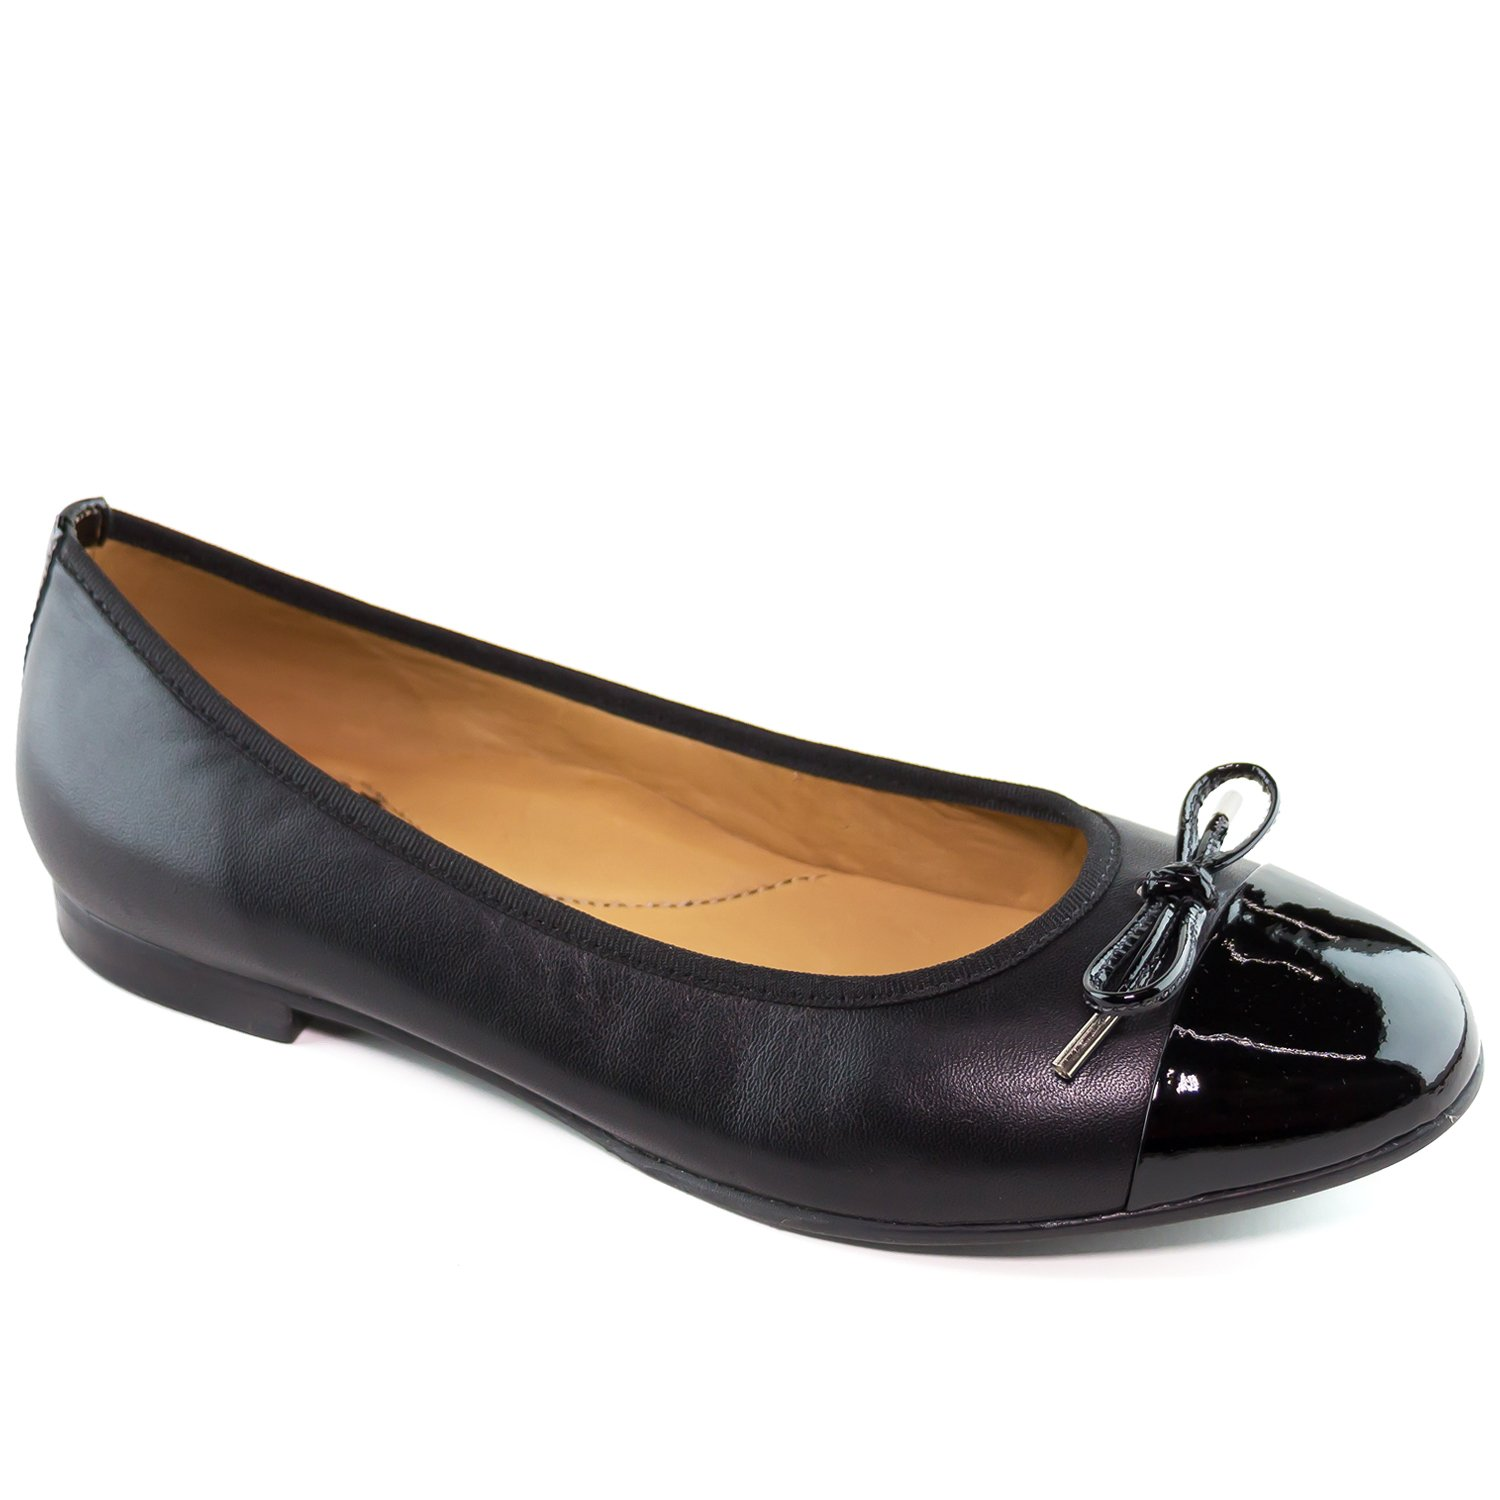 Driver Club USA Women's Genuine Leather Made In Brazil West Side Fashion Comfortable Black Napa Leather Bow Flat 9.5